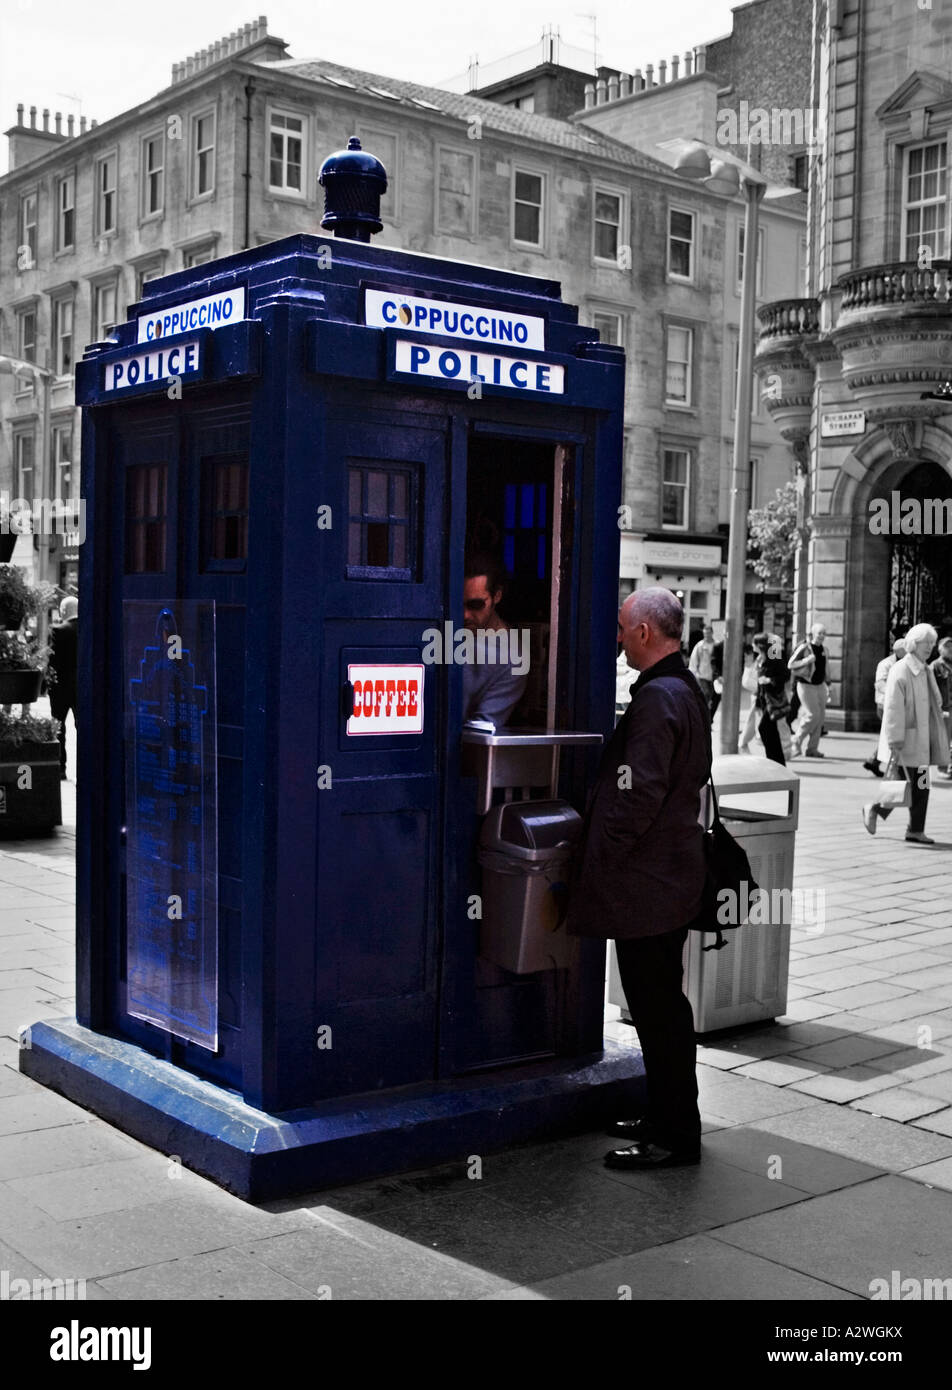 A man buying a drink from an old police box that has been converted into a coffee kiosk, Buchanan street Glasgow - Stock Image